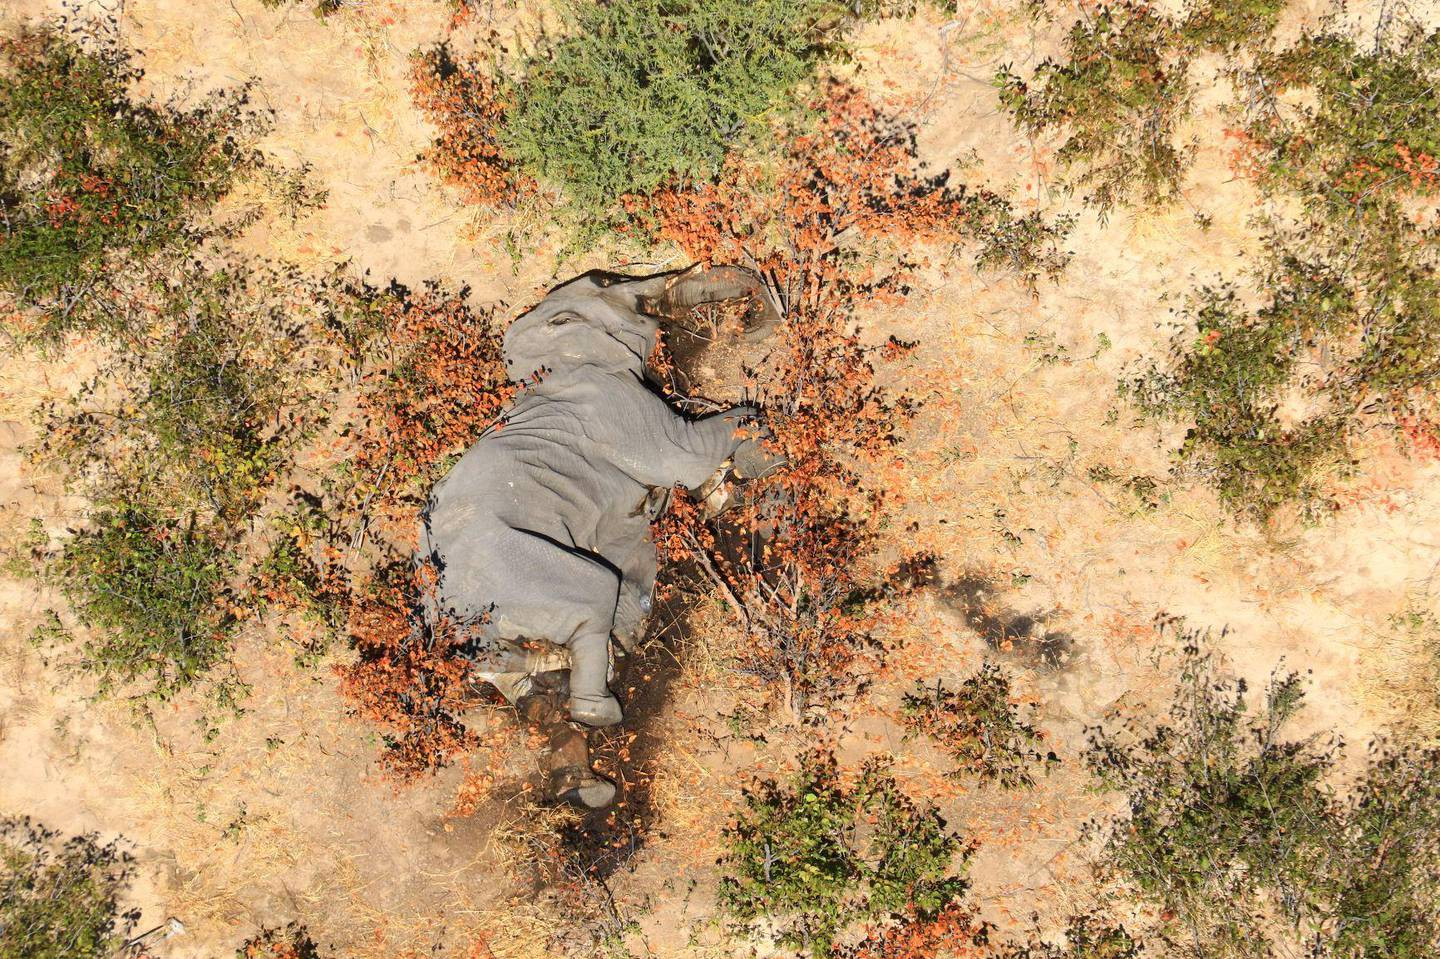 """(FILES) In this file photo taken on May 25, 2020 and provided on July 3, 2020 courtesy of the National Park Rescue charity shows the carcass of one of the many elephants which have died mysteriously in the Okavango Delta in Botswana.  Hundreds of elephants that died mysteriously in Botswana's famed Okavango Delta succumbed to bacteria found in the water pans, the wildlife department revealed on September 21, 2020. - RESTRICTED TO EDITORIAL USE - MANDATORY CREDIT """"AFP PHOTO /NATIONAL PARK RESCUE"""" - NO MARKETING - NO ADVERTISING CAMPAIGNS - DISTRIBUTED AS A SERVICE TO CLIENTS  / AFP / NATIONAL PARK RESCUE / - / RESTRICTED TO EDITORIAL USE - MANDATORY CREDIT """"AFP PHOTO /NATIONAL PARK RESCUE"""" - NO MARKETING - NO ADVERTISING CAMPAIGNS - DISTRIBUTED AS A SERVICE TO CLIENTS"""